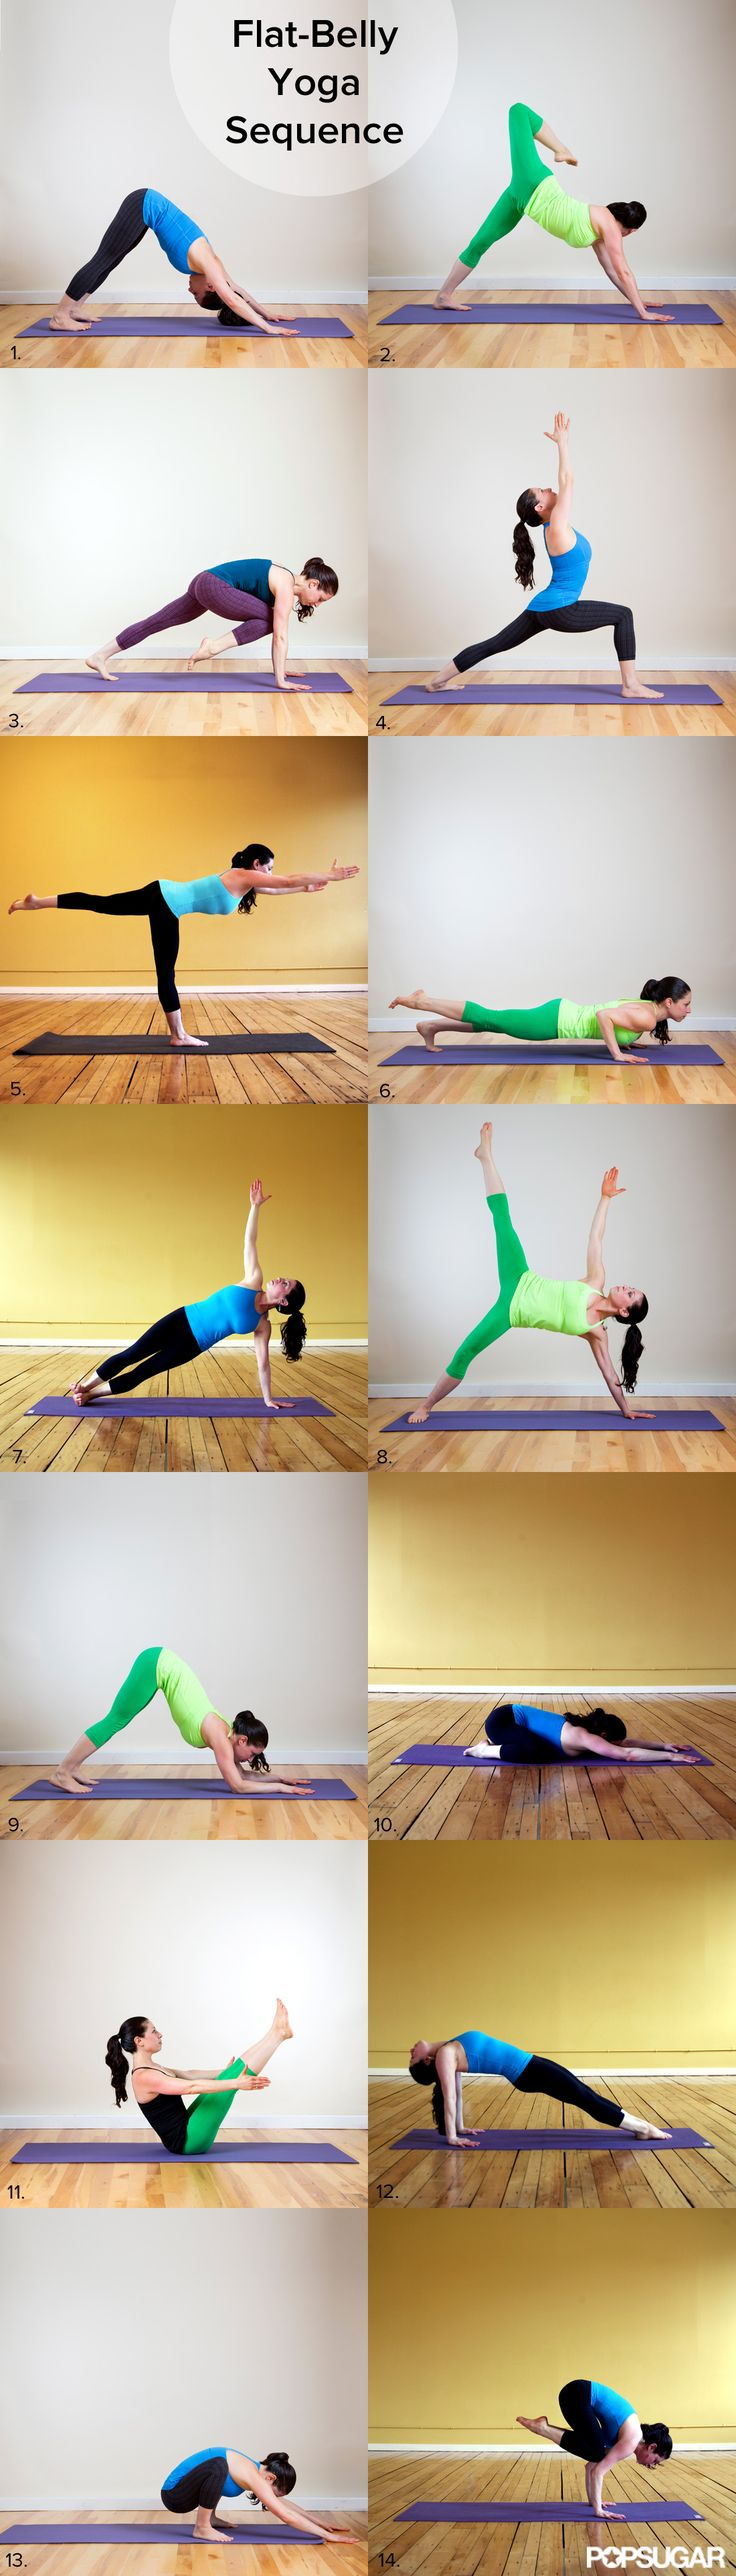 Flat belly yoga